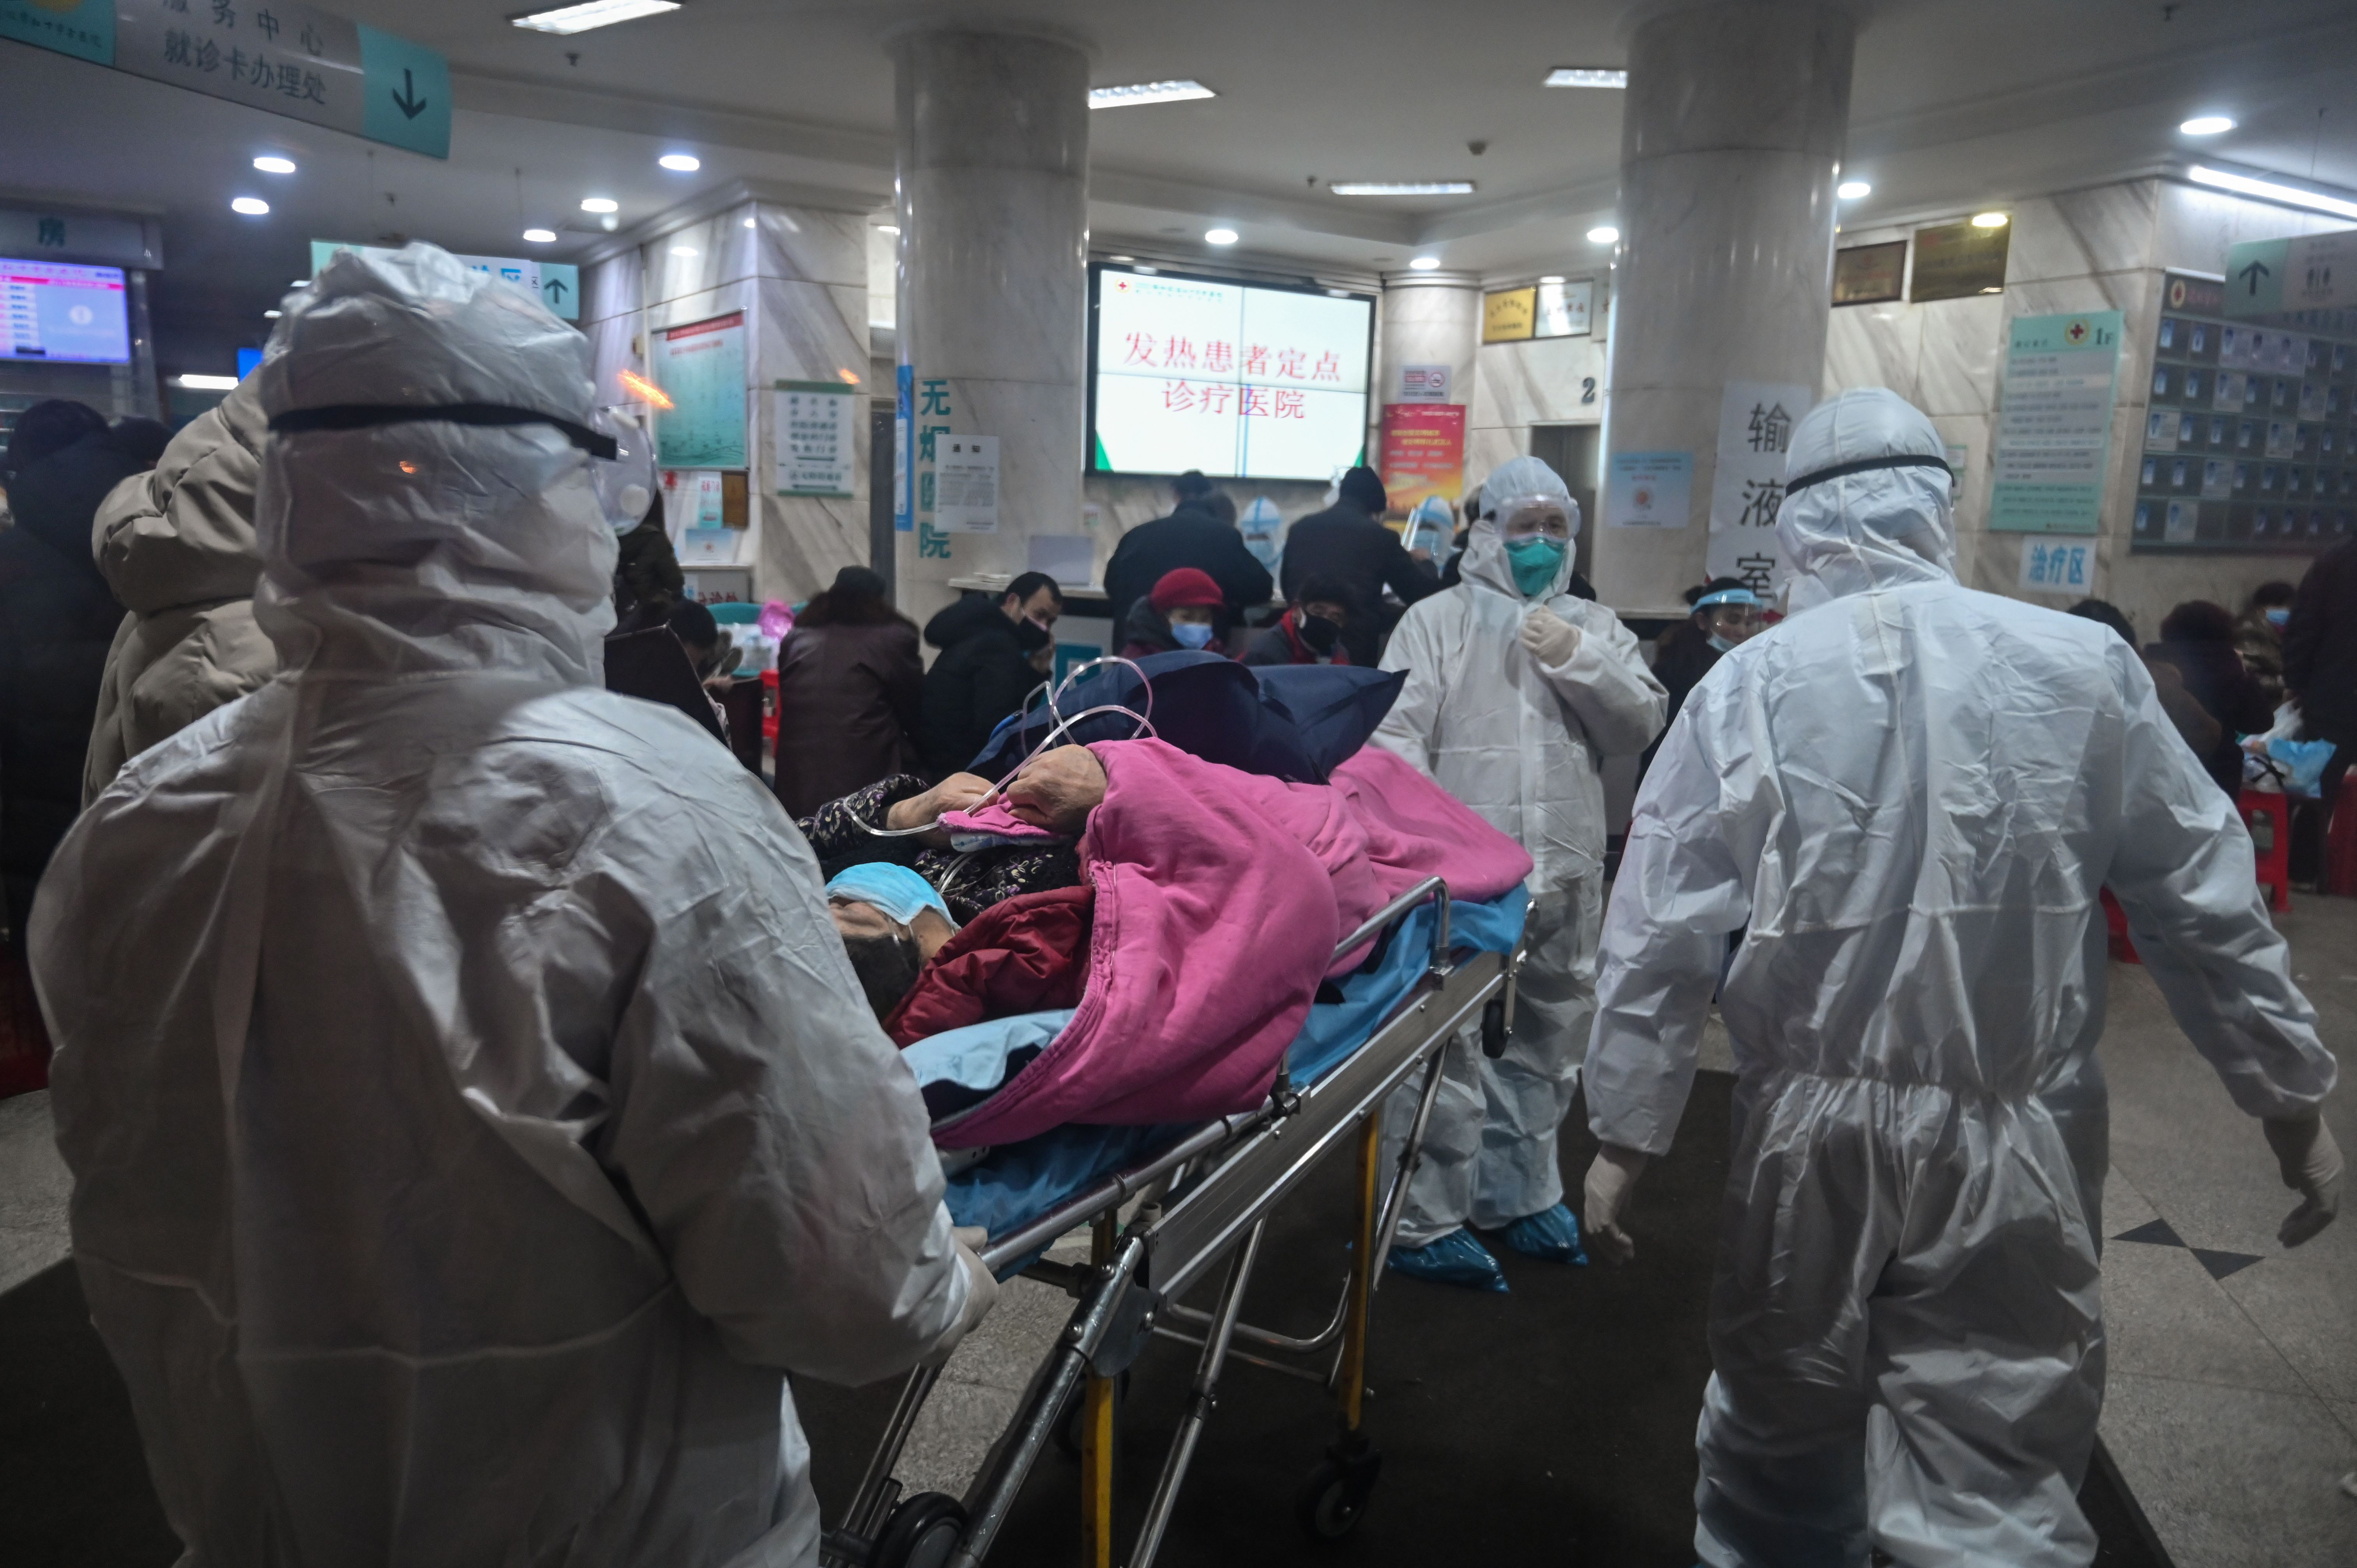 Medical staff wearing protective clothing arrive with a patient at the Wuhan Red Cross Hospital in Wuhan on January 25.